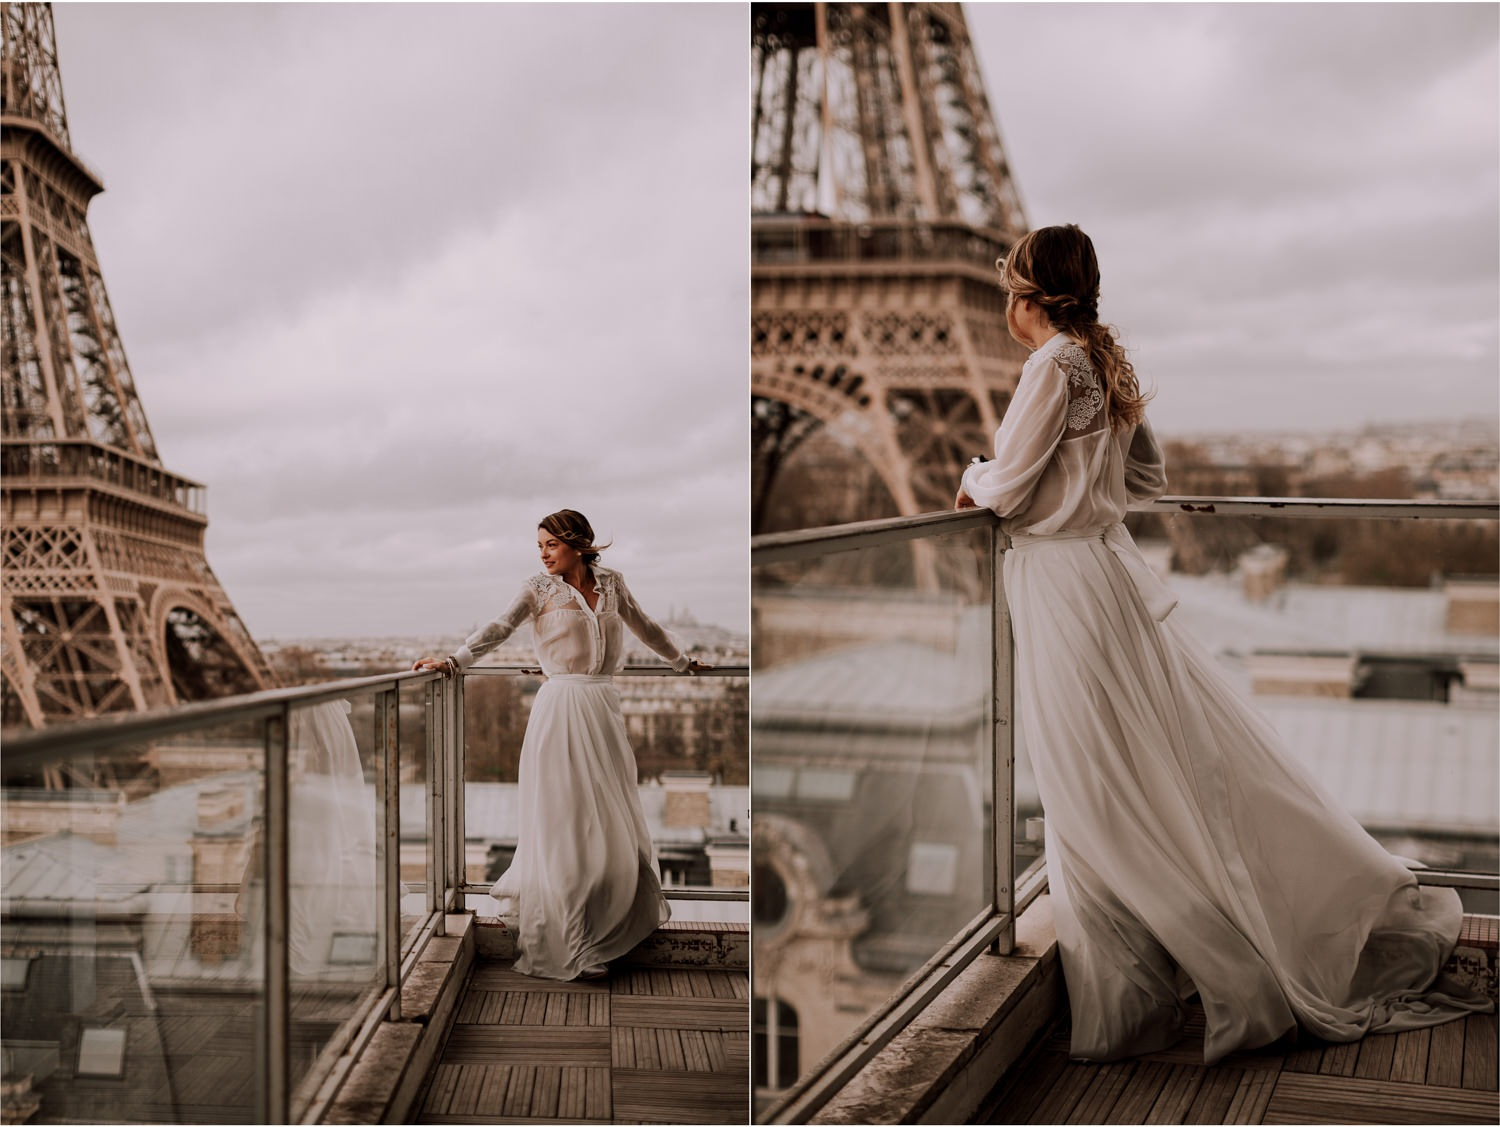 Photographe mariage montmartre - Youandme - Photographe mariage tour eiffel - tour eiffel - Amandine Marque - Photographe mariage Lyon-25